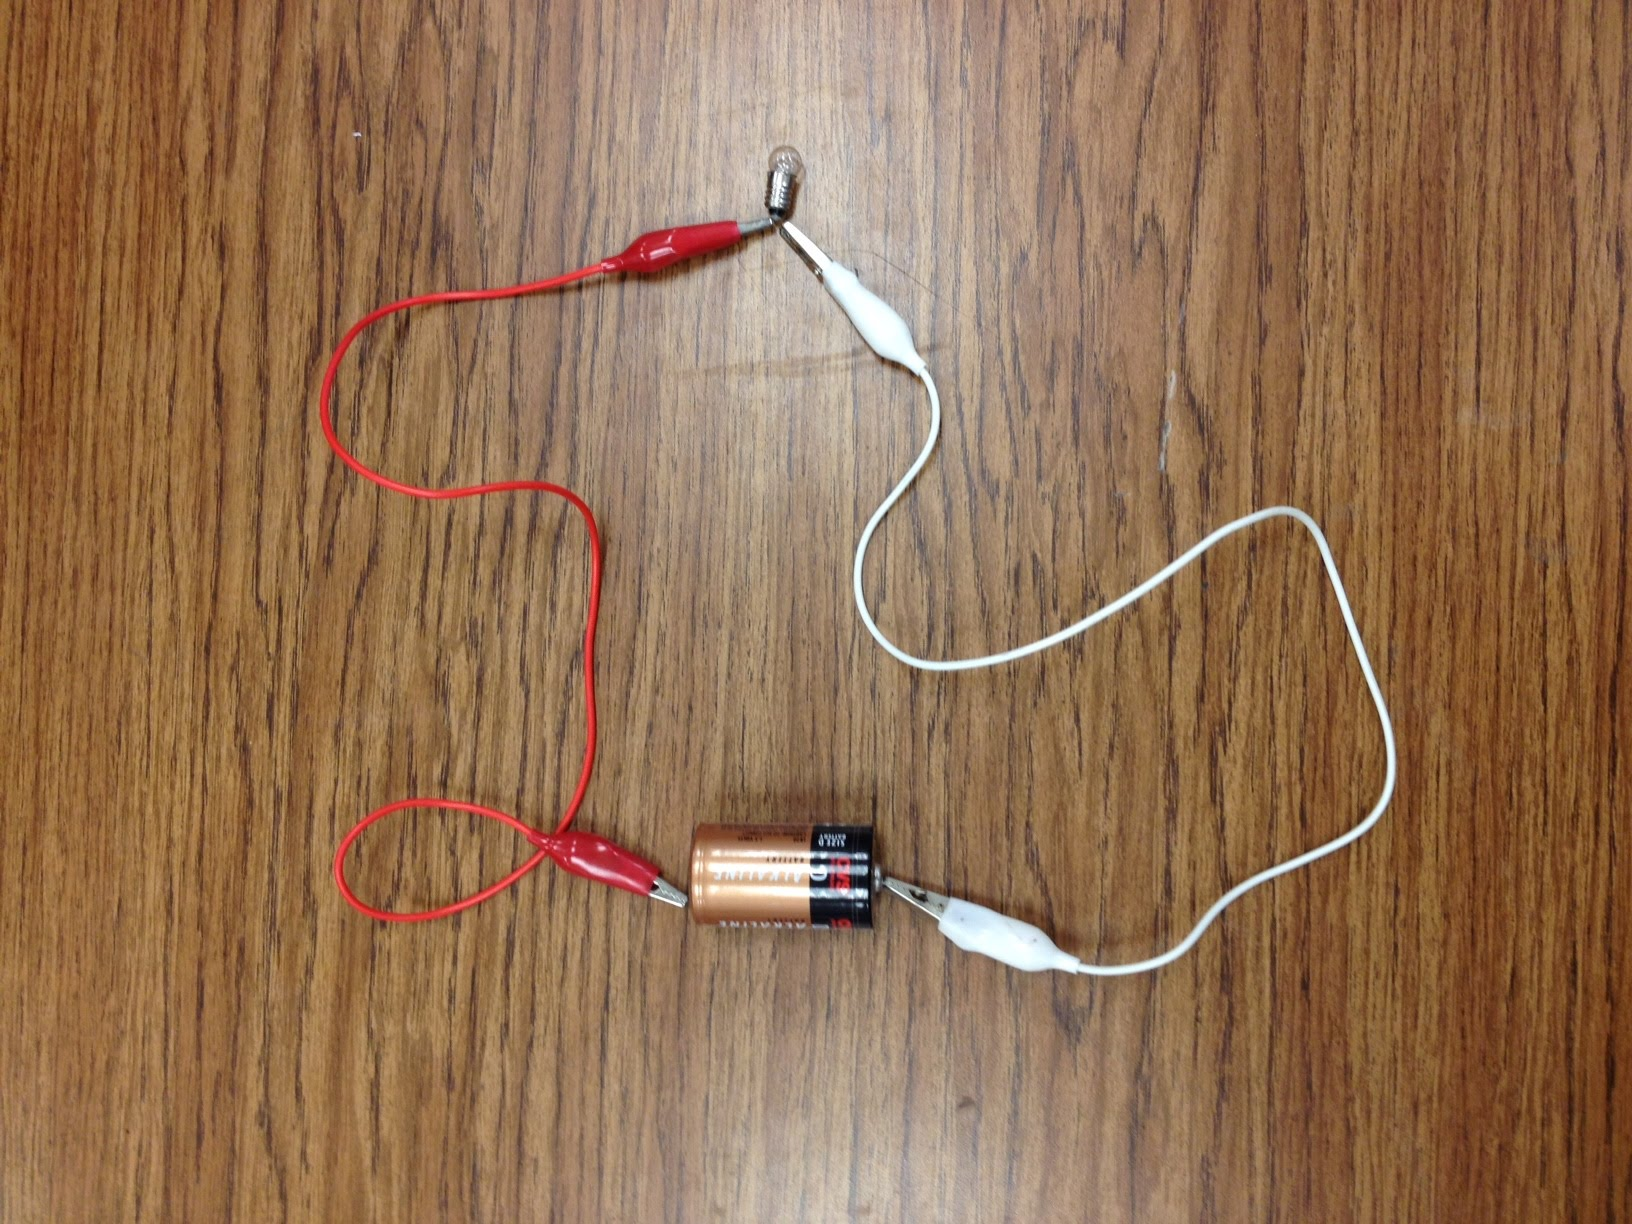 Light Bulb With Electrical Circuit Battery Wires Everything About Basic And Circuits Oliver Snow School Site Rh Sites Google Com Electric